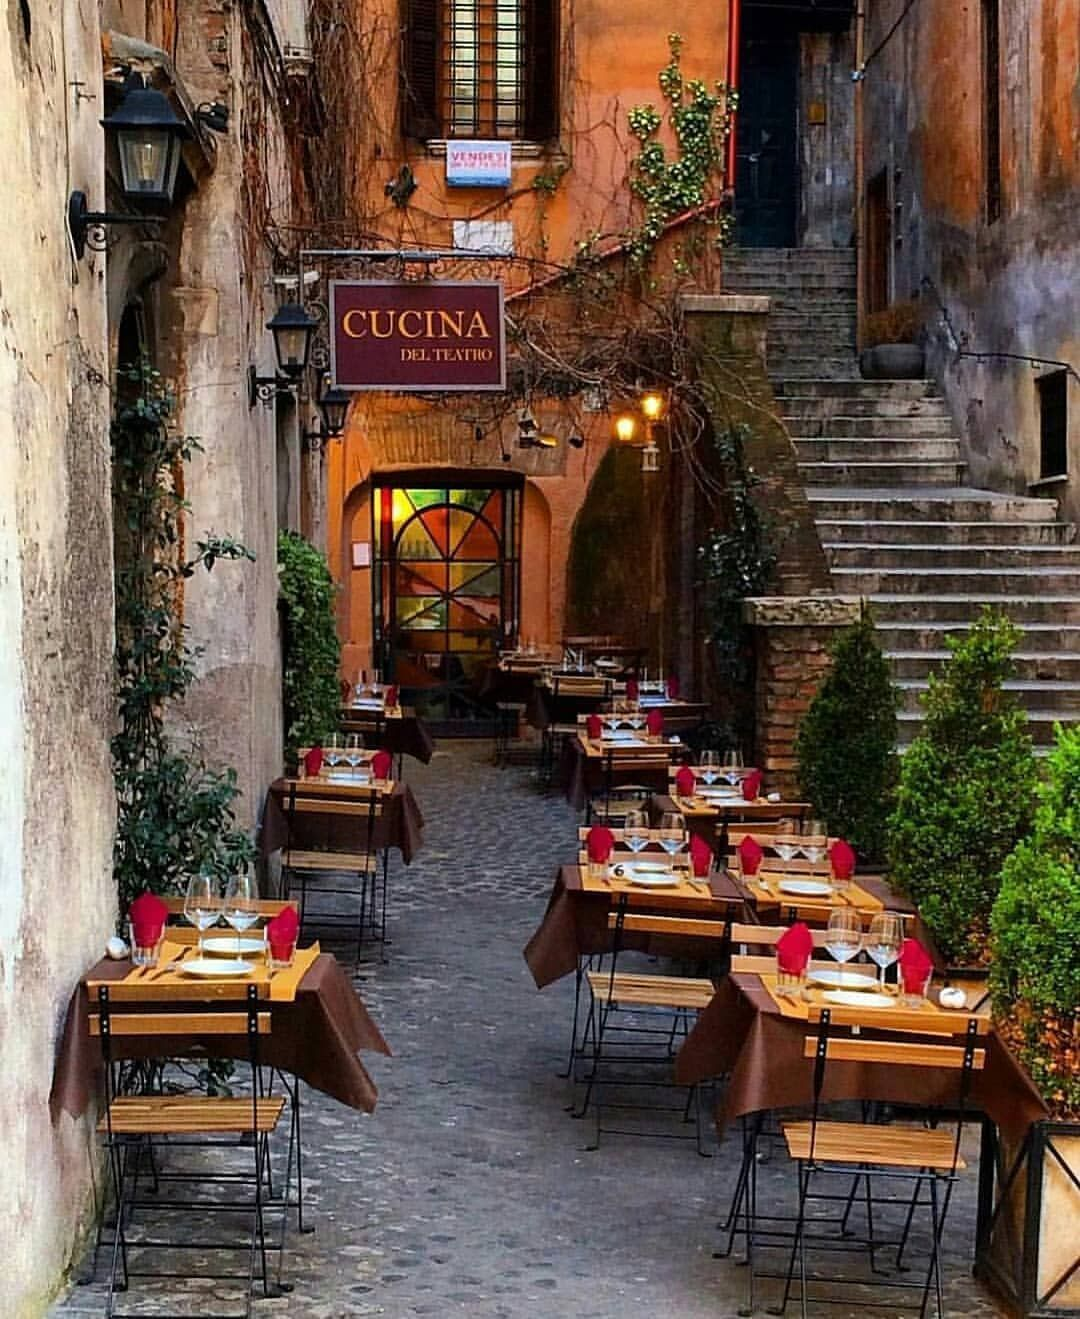 Cucina Osteria Rome Couldn T Resist Posting This Gorgeous Image Of Cucina Del Teatro